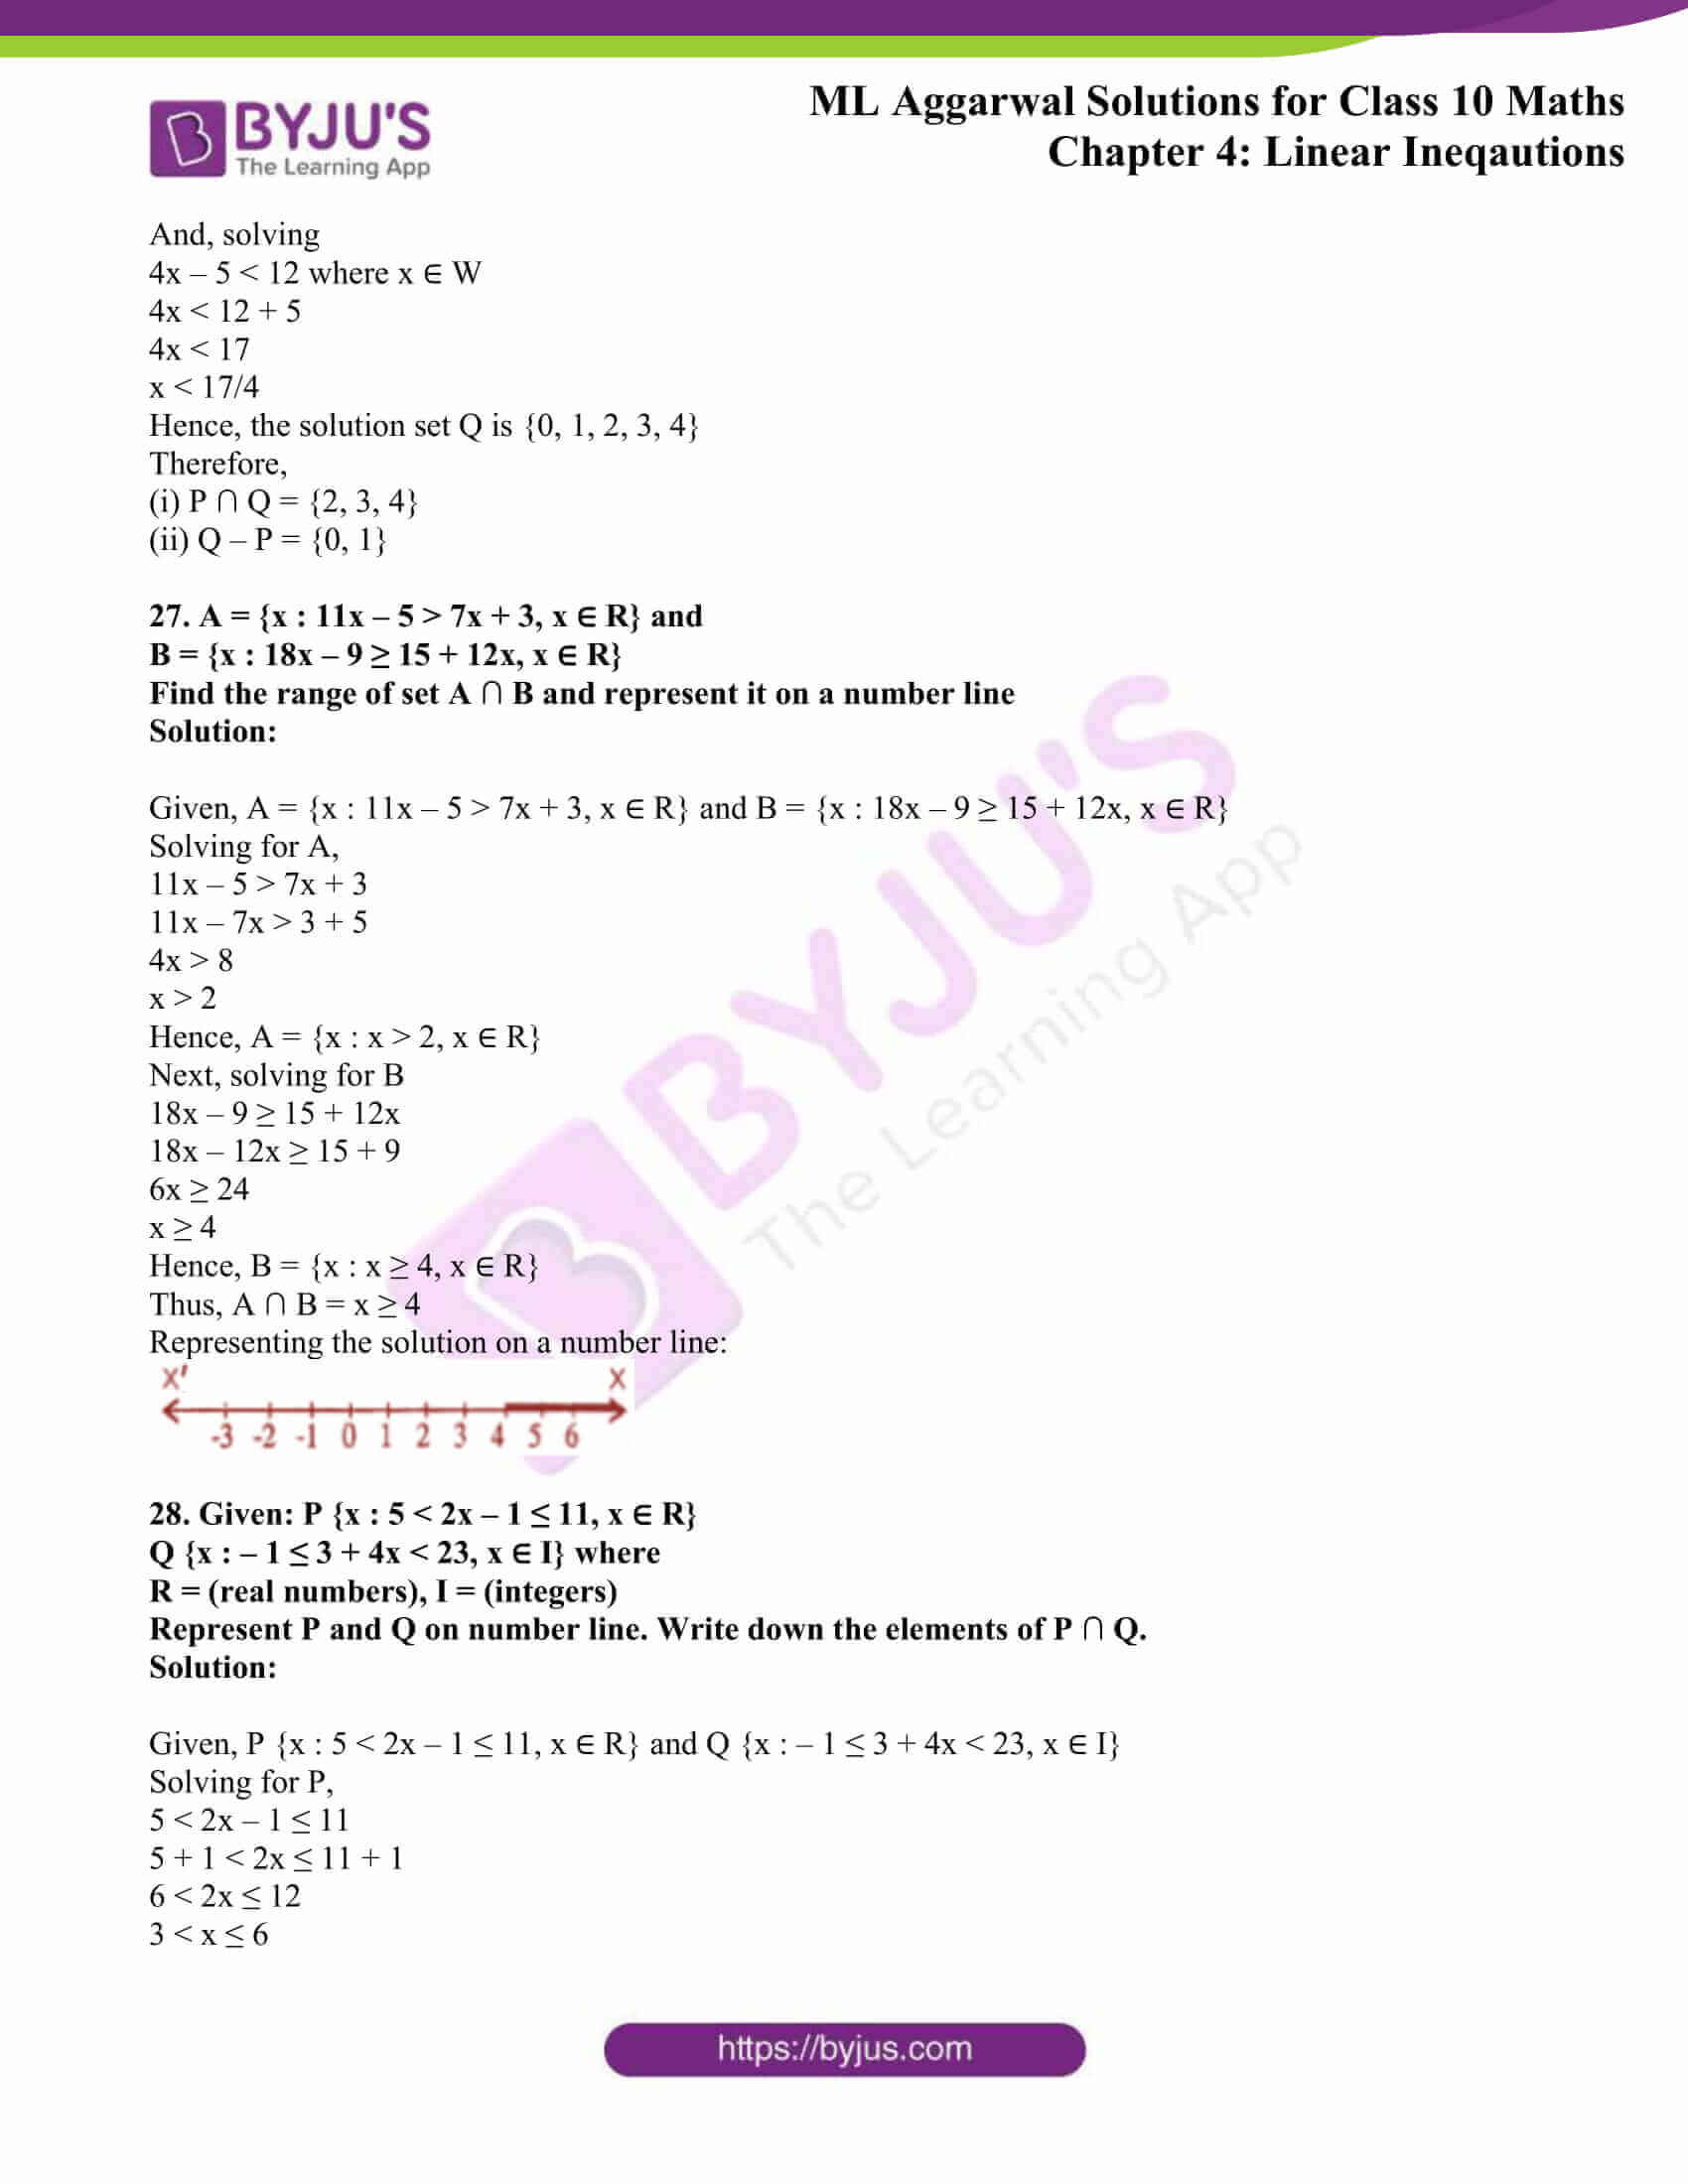 ml aggarwal solutions class 10 maths chapter 4 10